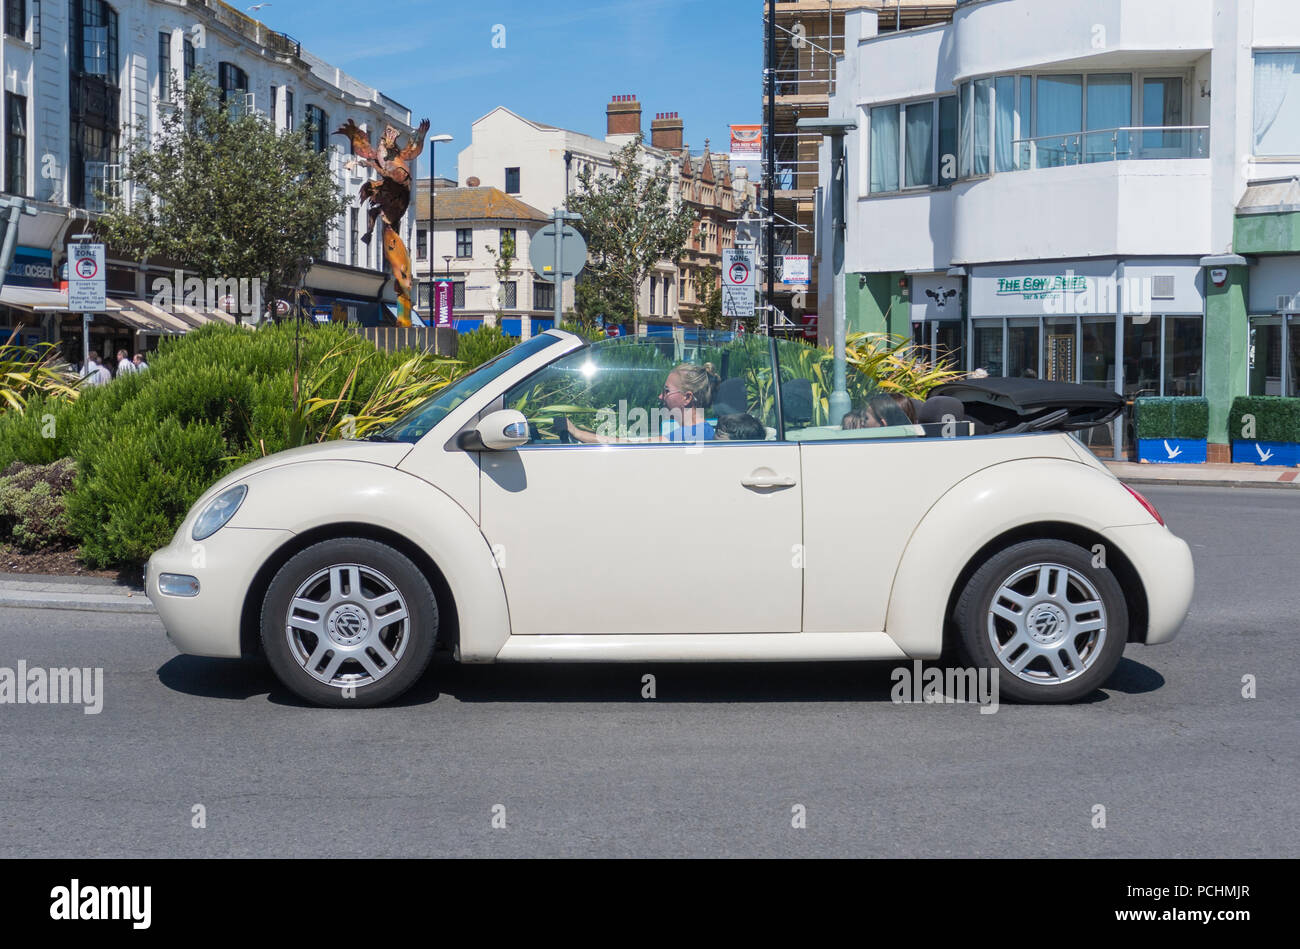 Beige convertible Volkswagen Beetle Cabriolet car from 2005, with the top down, on a road in Summer in West Sussex, England, UK. - Stock Image